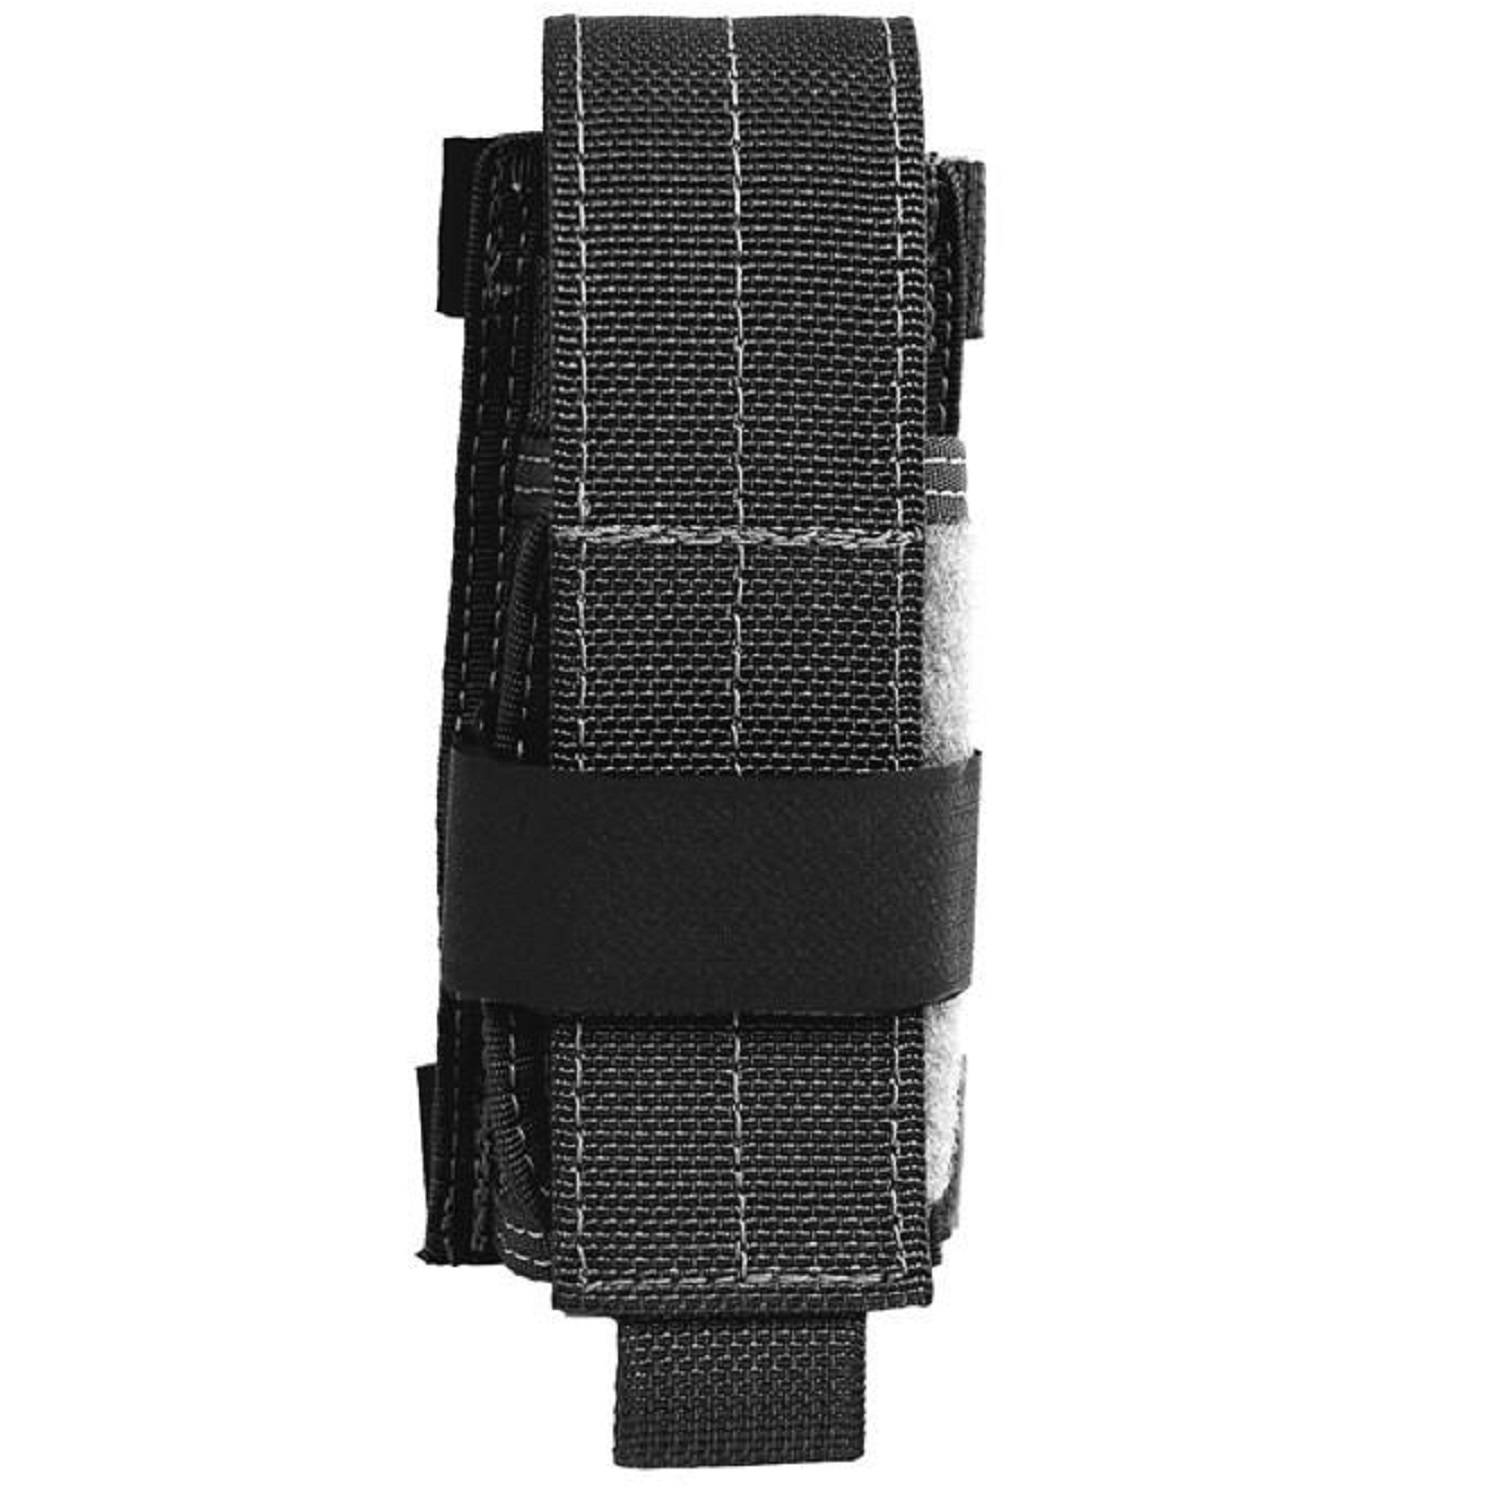 UFBS Universal Flashlight/Baton Sheath Black